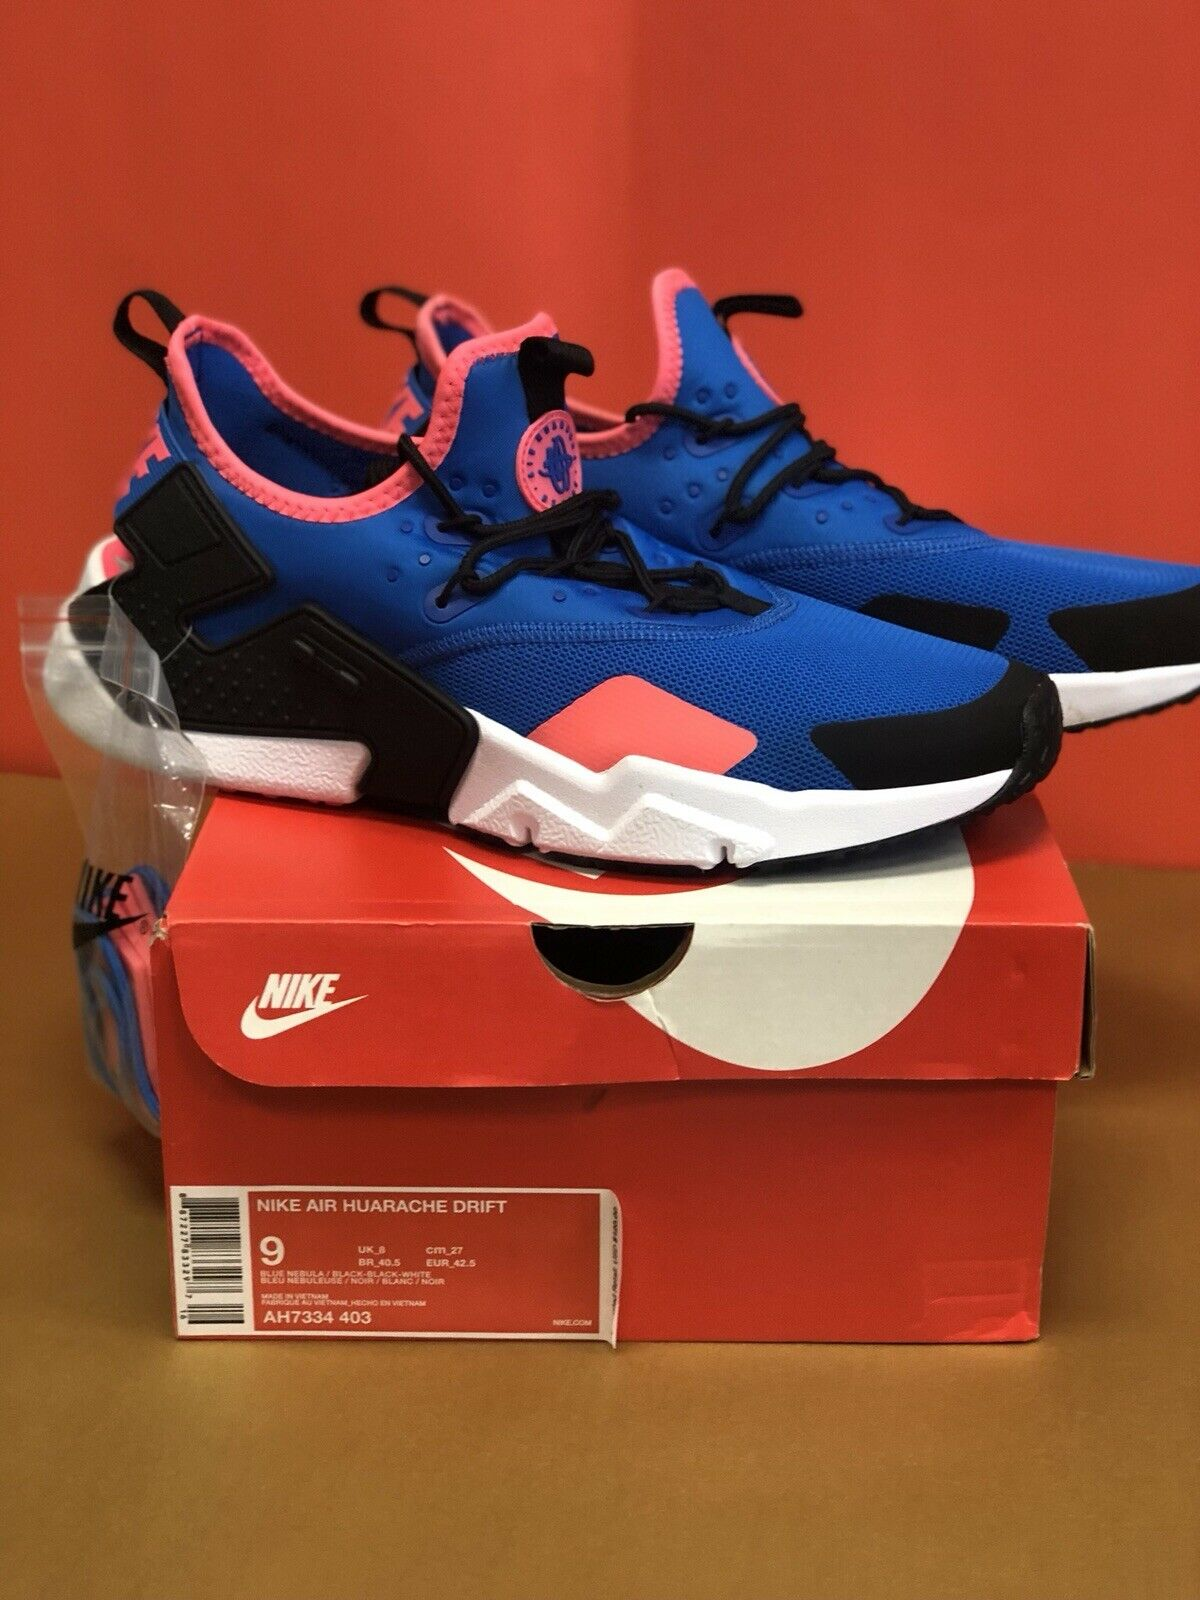 New NIKE AIR HUARACHE DRIFT shoes Size 9 With Box AH7334 403 bluee Nebula